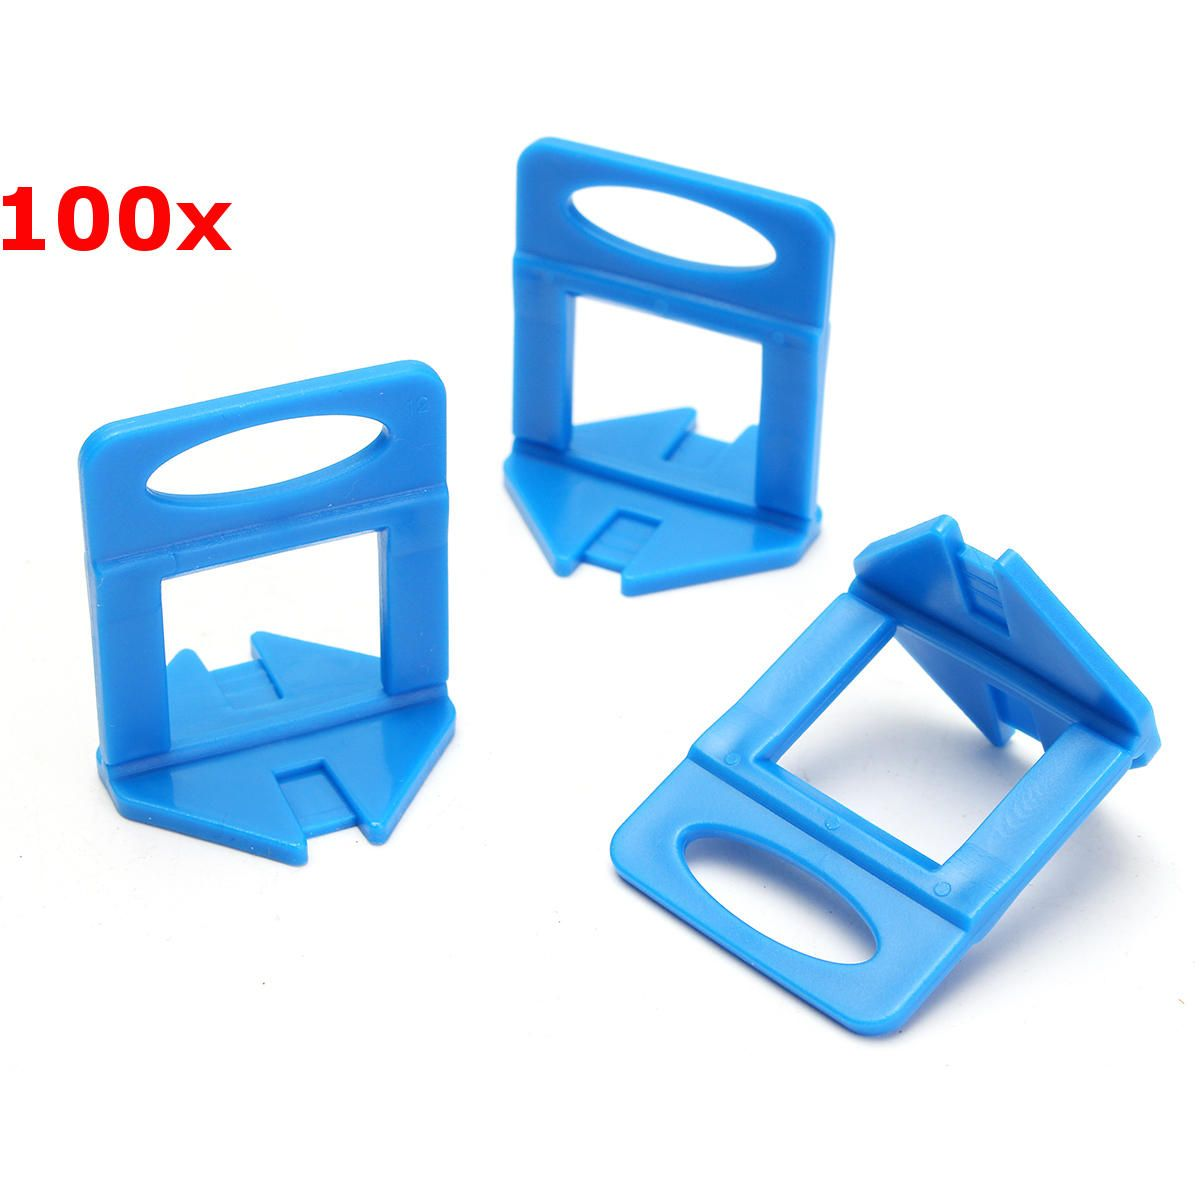 100pcs Leveler Ceramic Clips Spacers Plastic Tile Wall Floor Leveling System Tool Wall Tiles Used Woodworking Tools Tiles